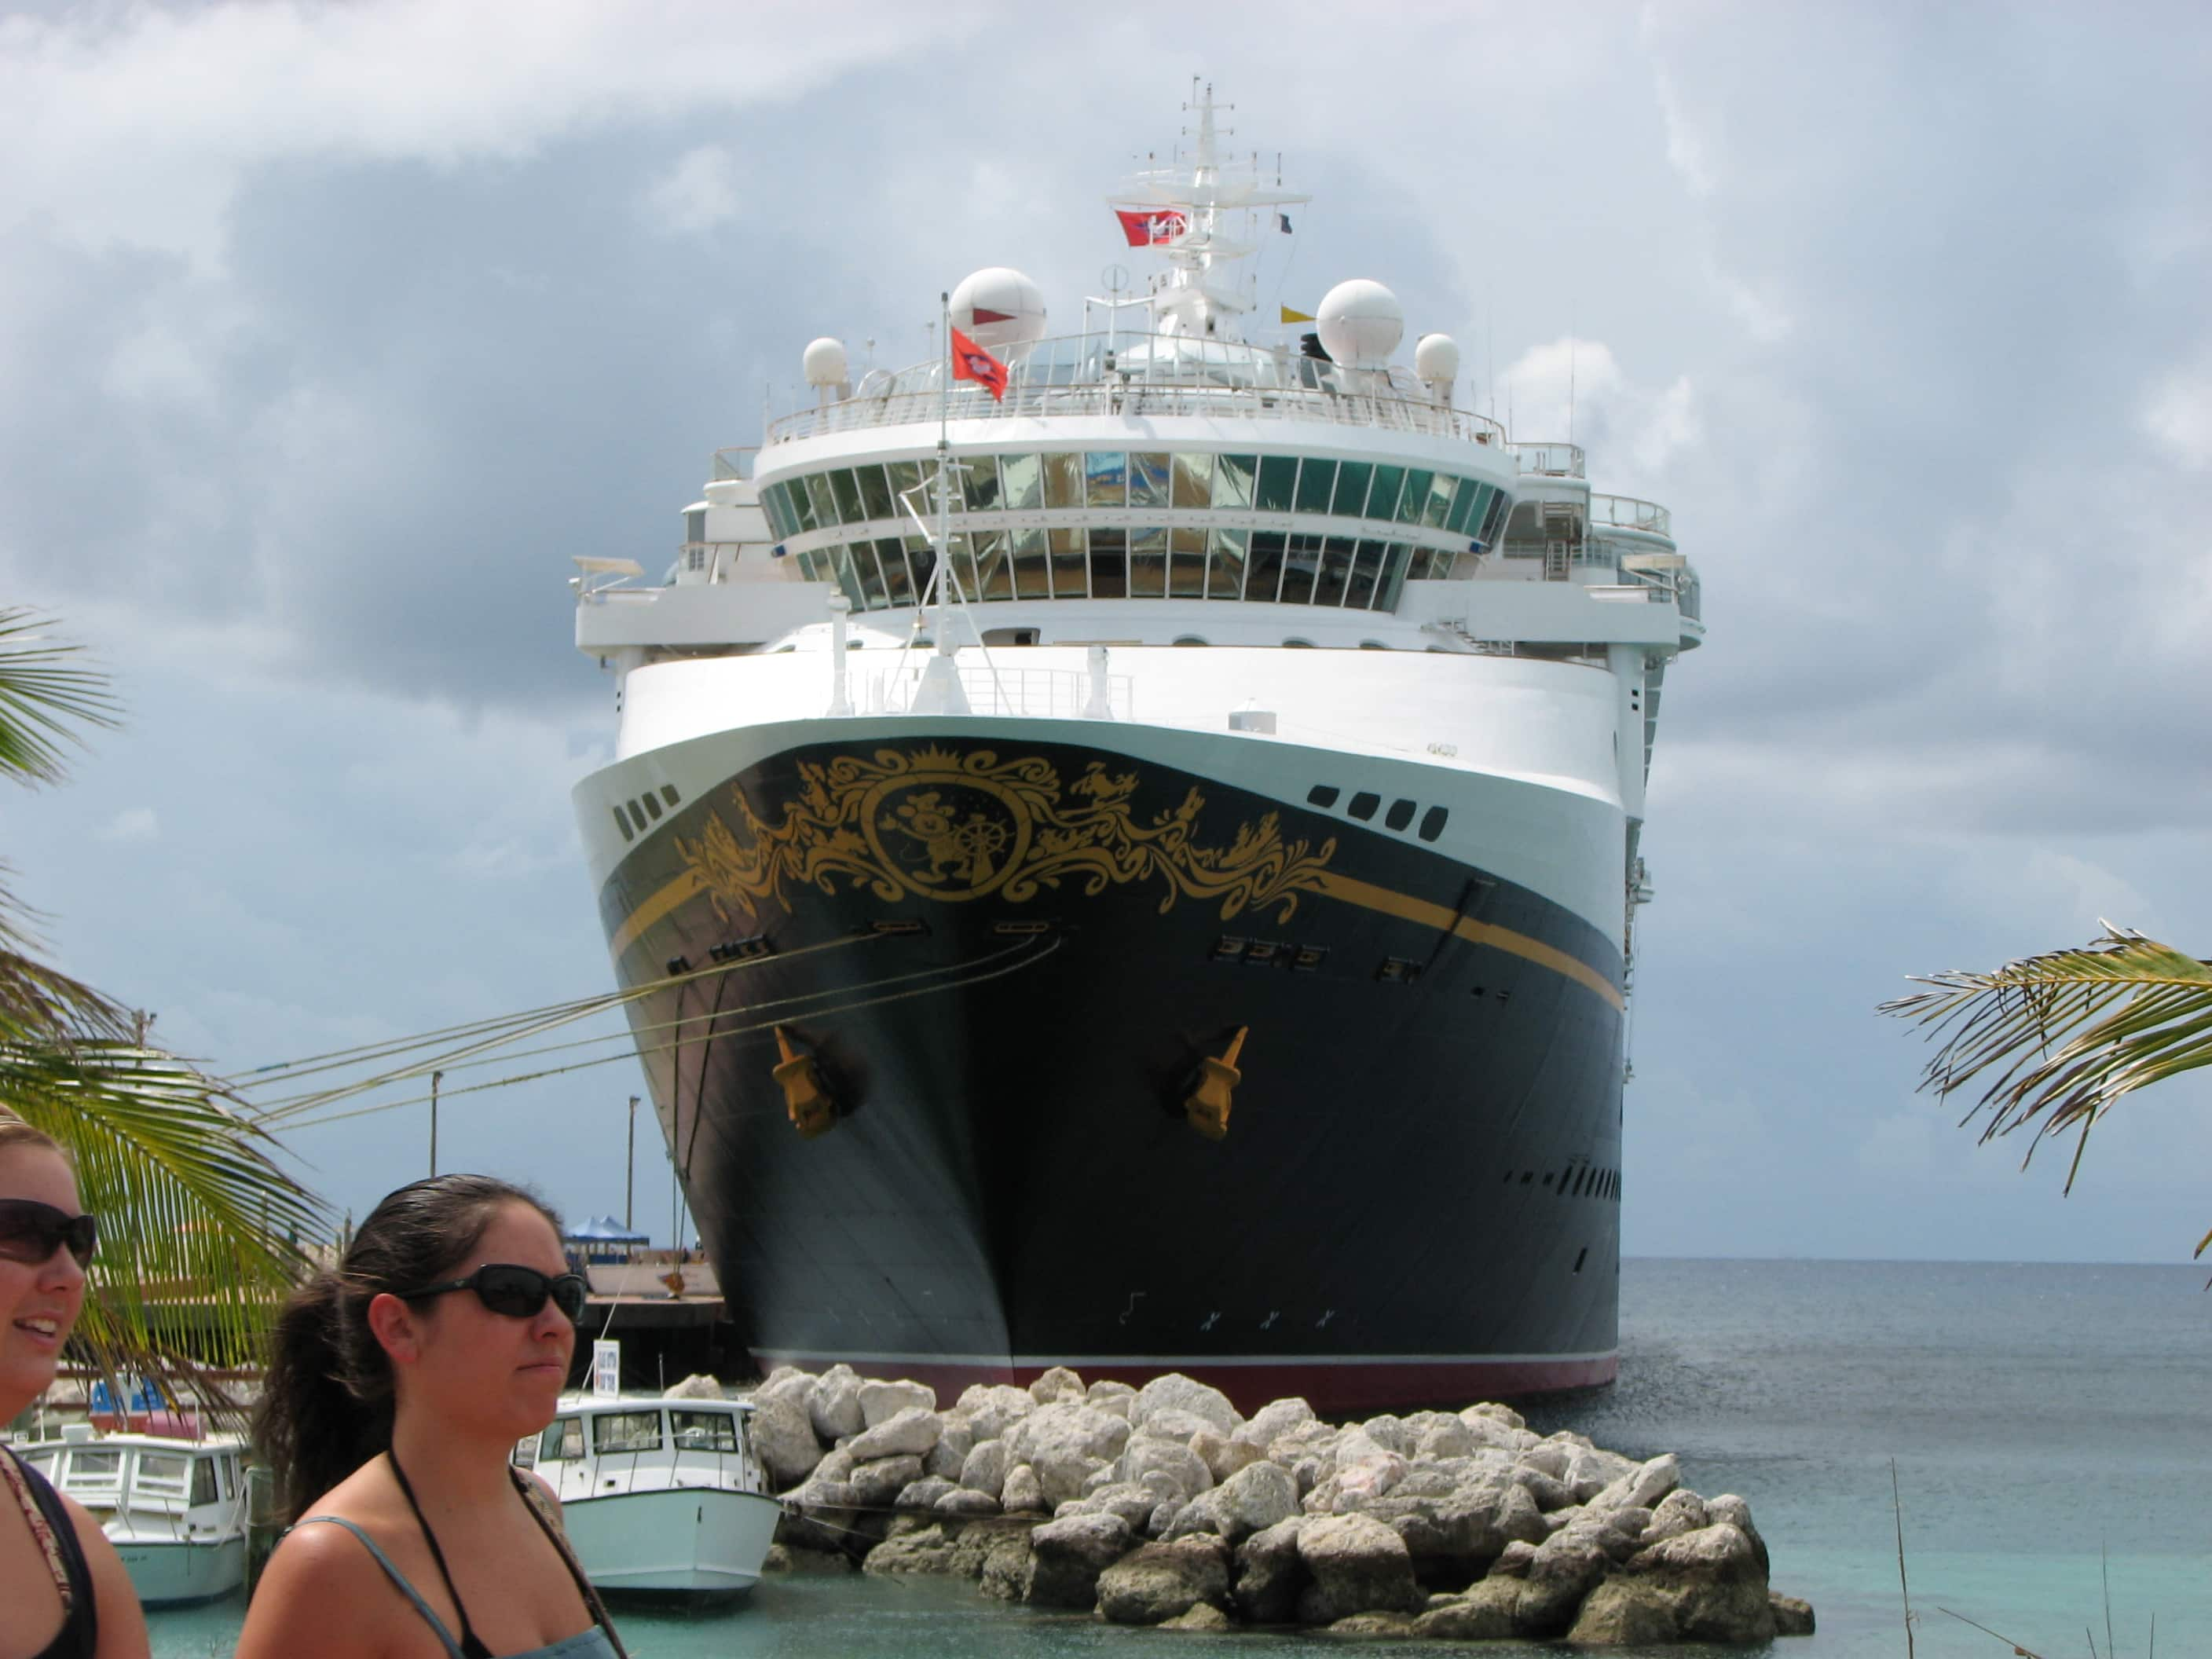 Disney Cruise Line Vacation Packages | I-4 Travel Company